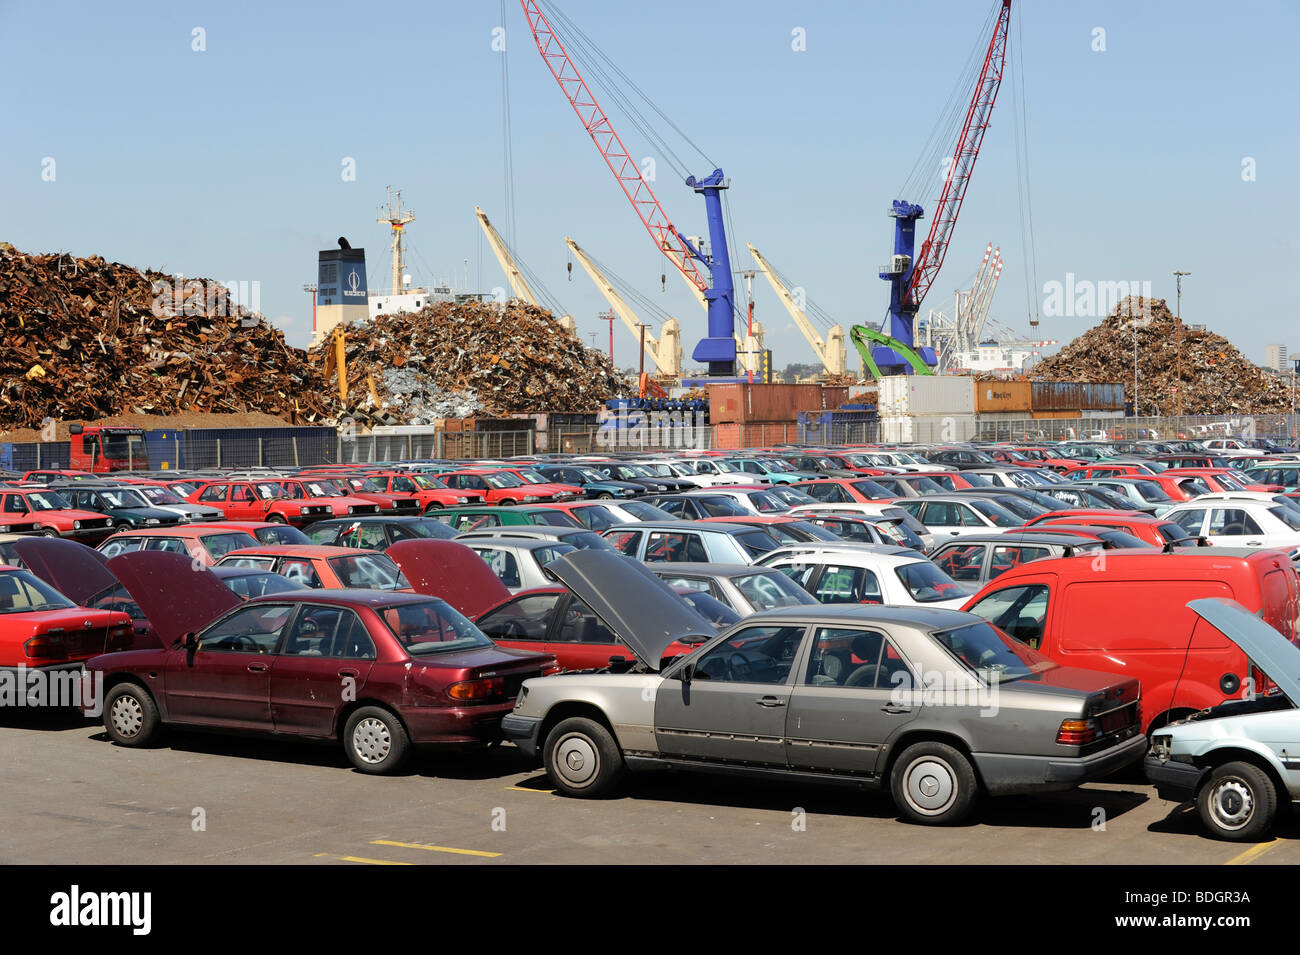 germany hamburg used old cars await export to africa cotonou benin stock photo 25570254 alamy. Black Bedroom Furniture Sets. Home Design Ideas